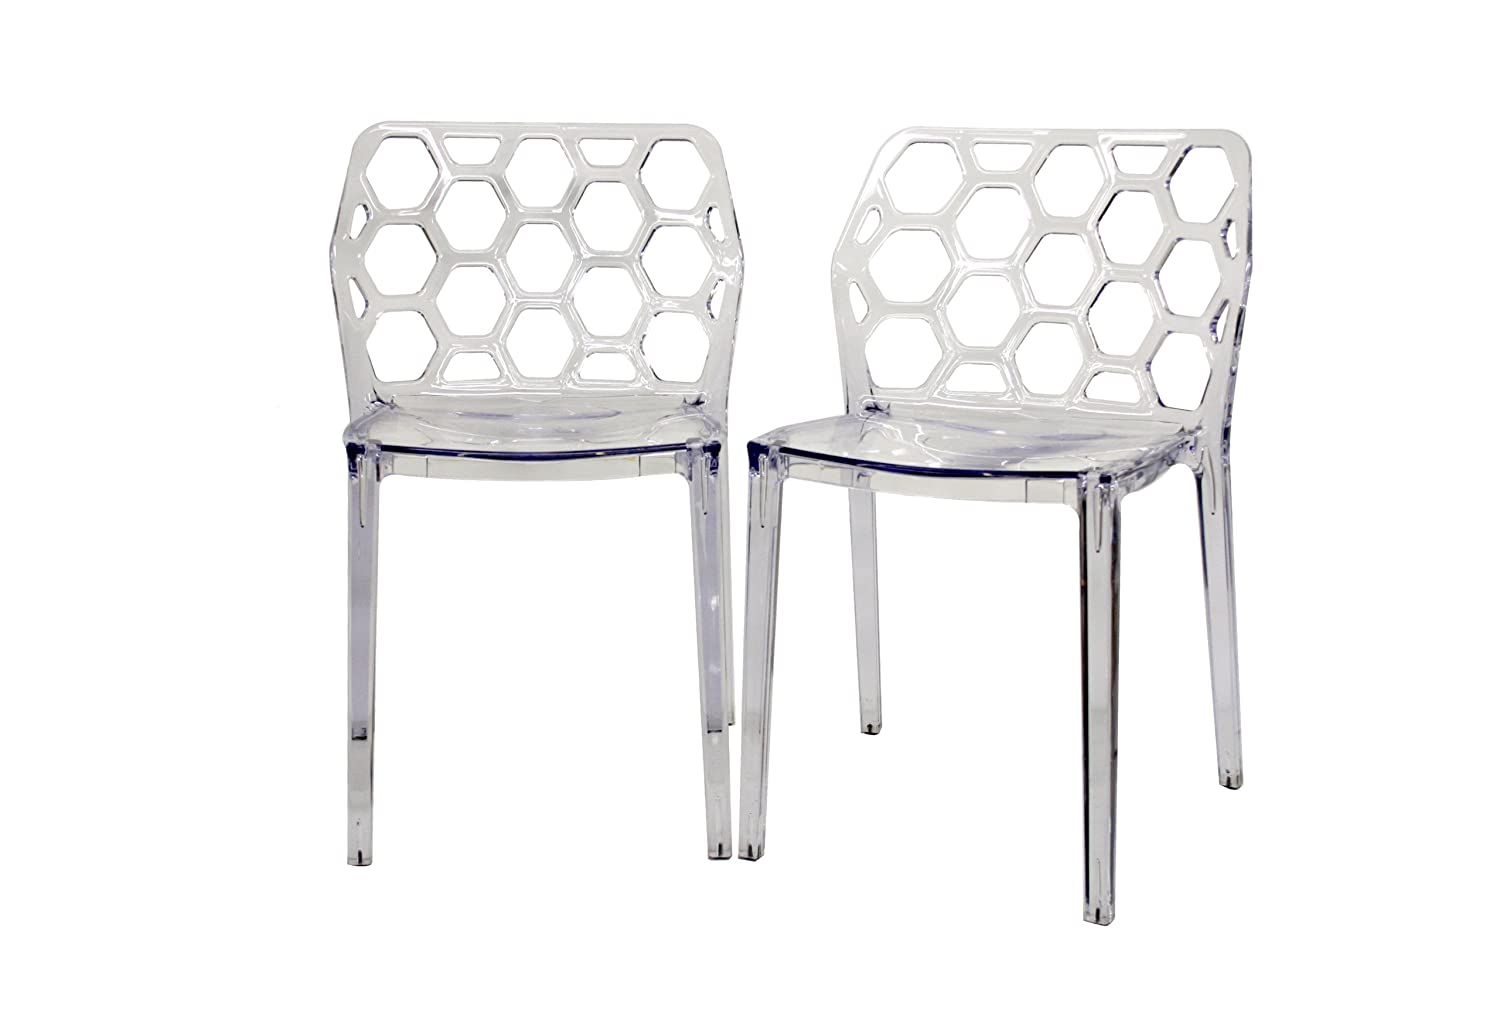 acrylic dining chairs clear. amazon.com: baxton studio honeycomb acrylic modern dining chair, set of 2, clear: kitchen \u0026 chairs clear s